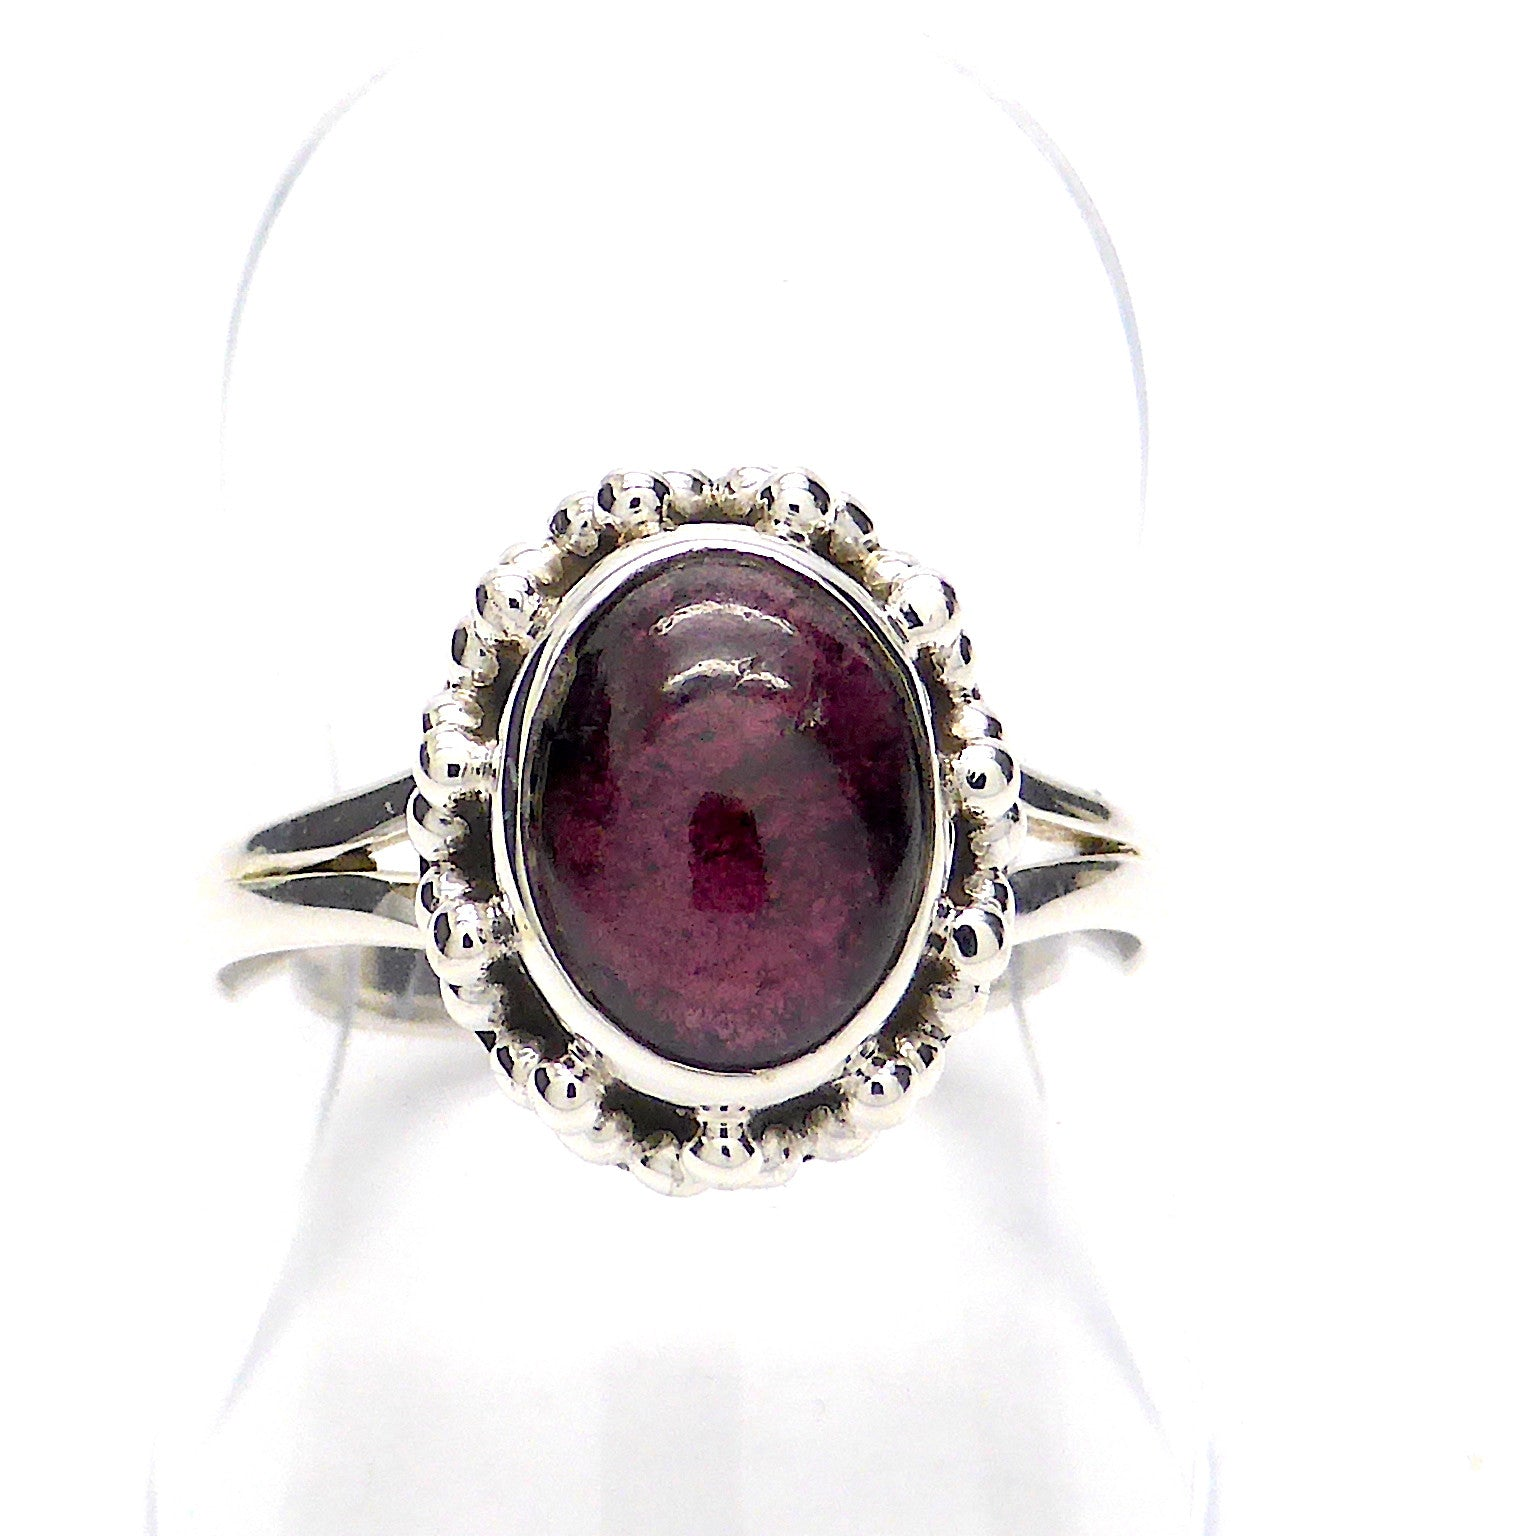 Garnet Ring | Oval Cabochon | Detailed 925 Sterling Silver | Smaller ring | Size 5,6,7,8,9,10 | Crystal Heart Melbourne Australia since 1986